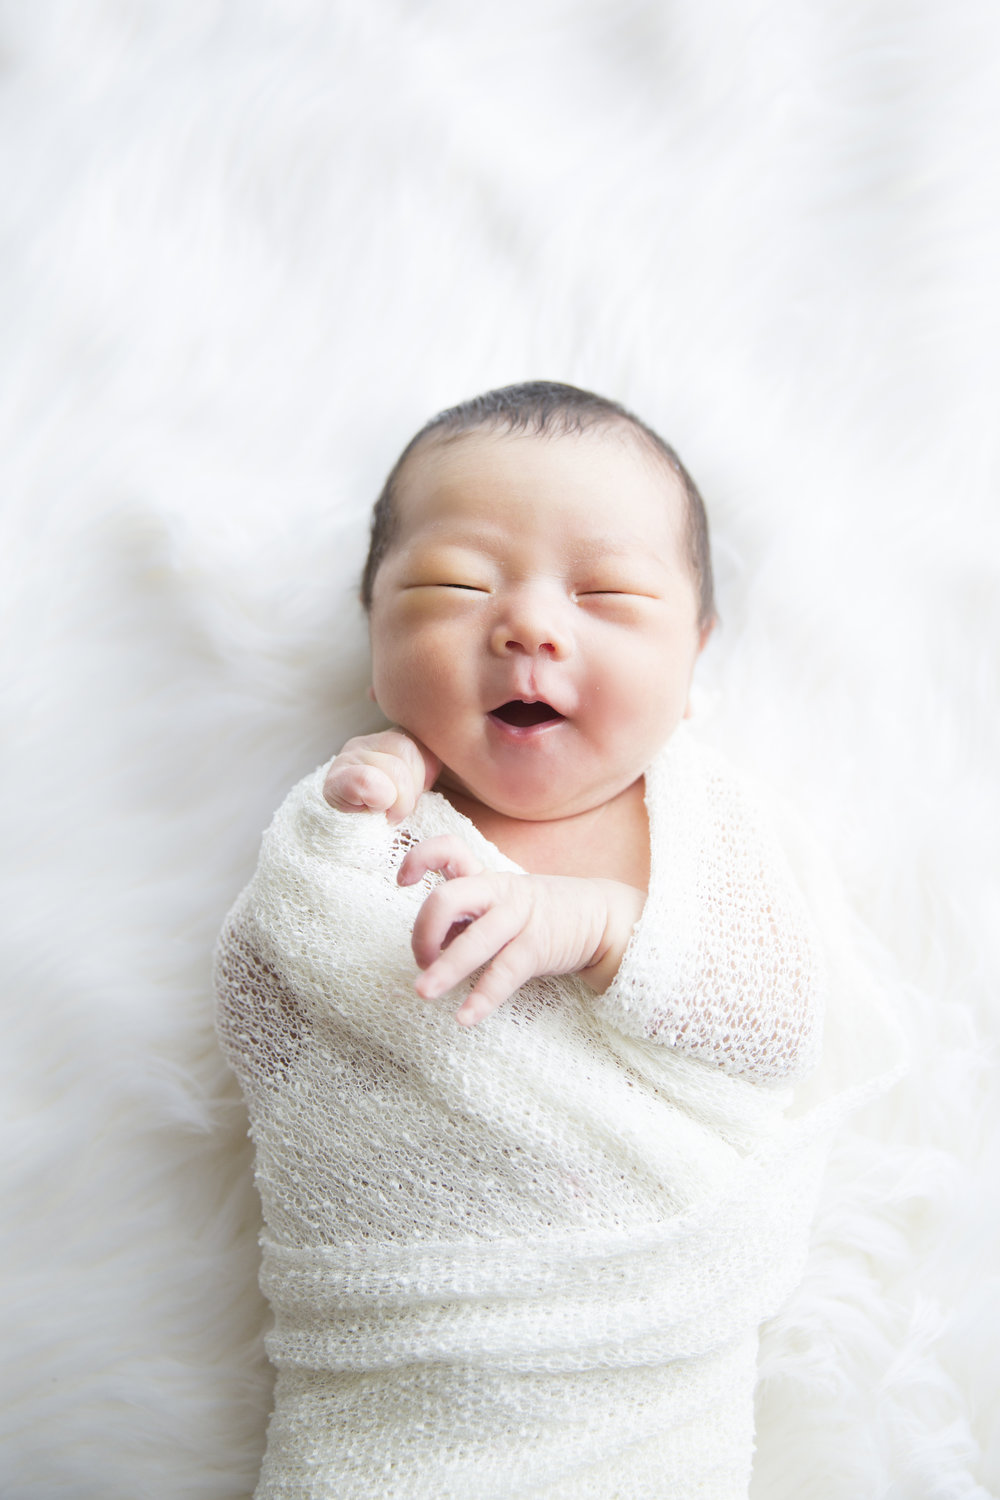 Chang_Infant_Shoot__0553.jpg